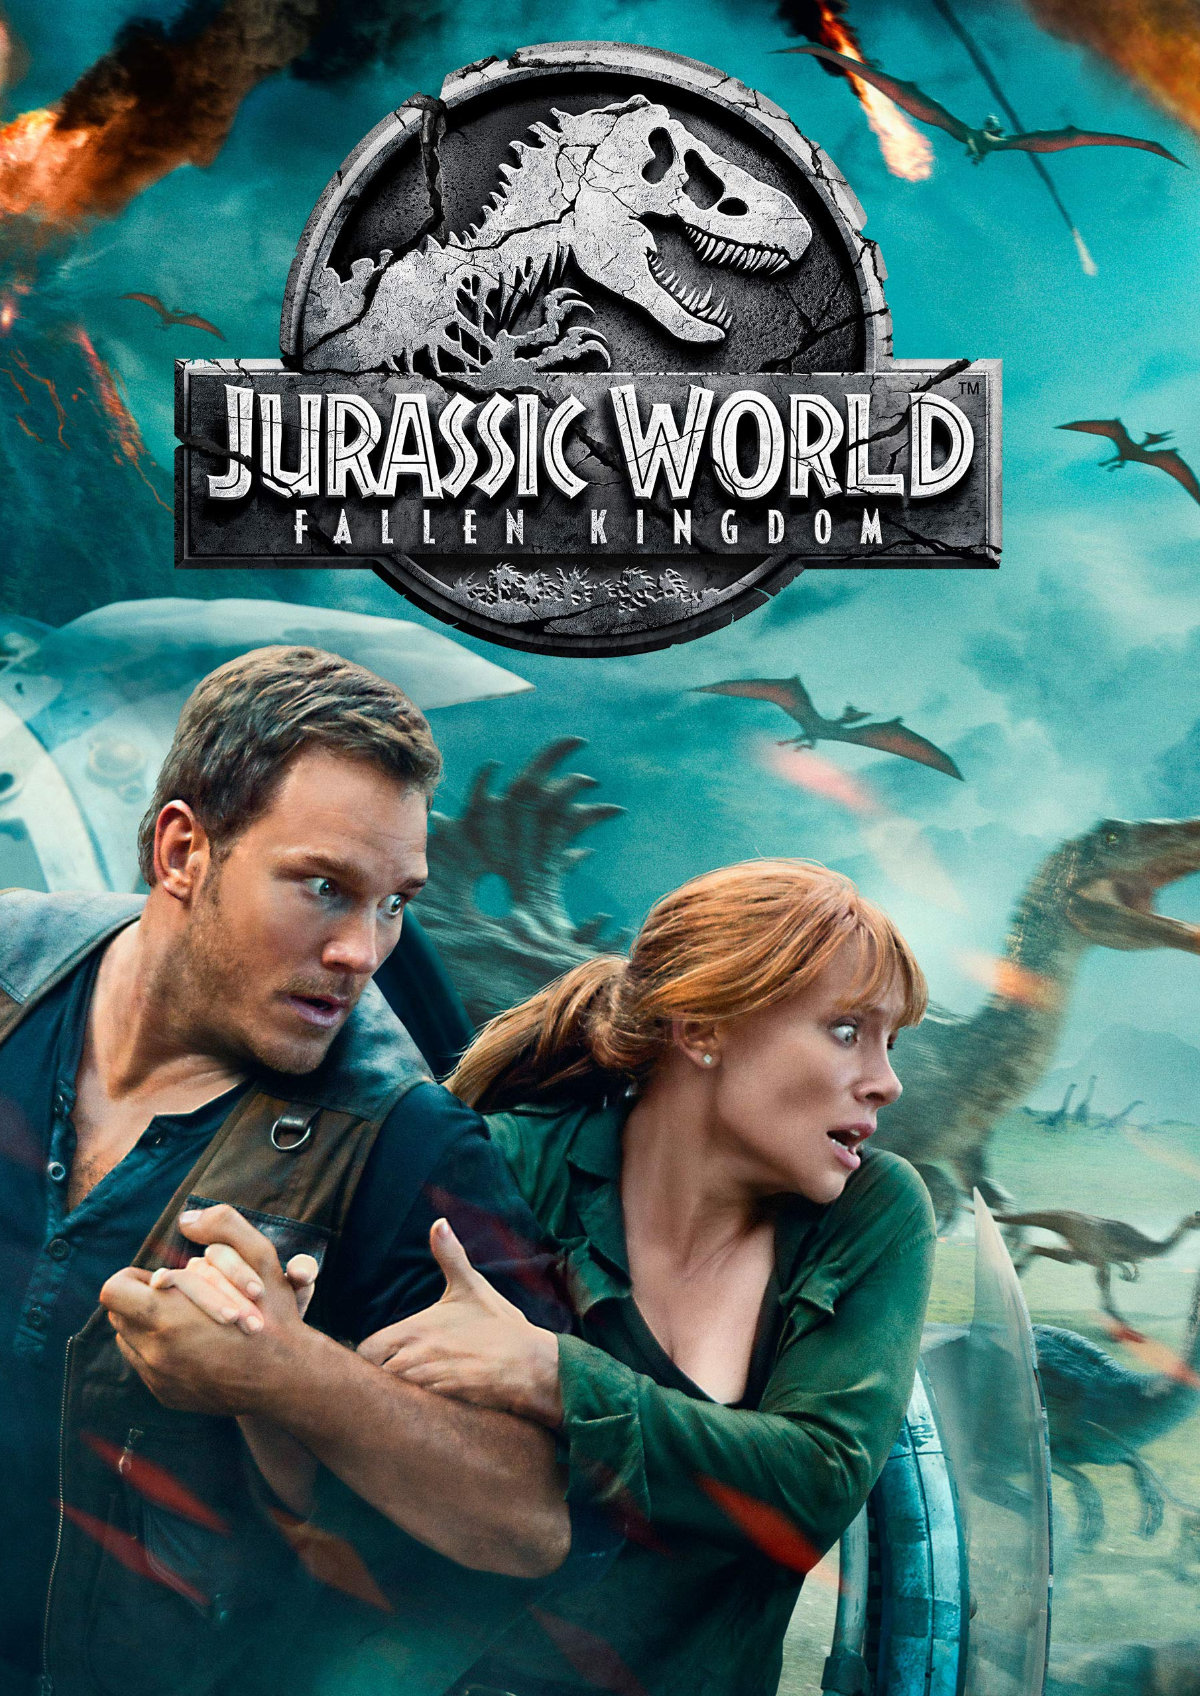 'Jurassic World: Fallen Kingdom' movie poster